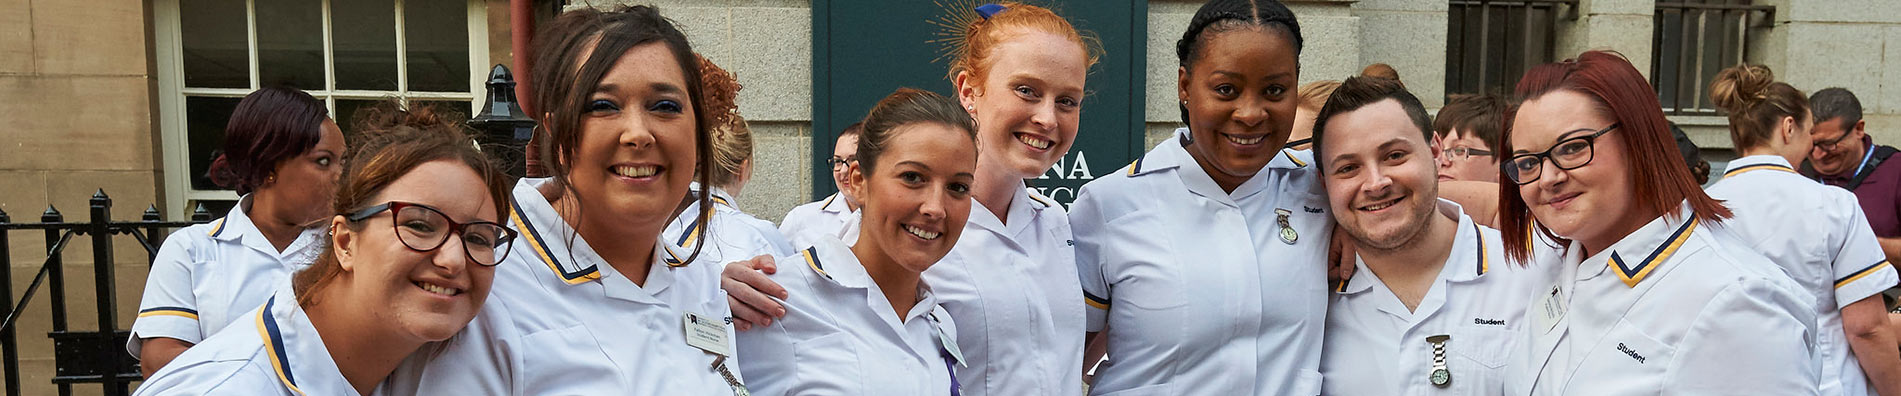 Student Nurses at annual procession